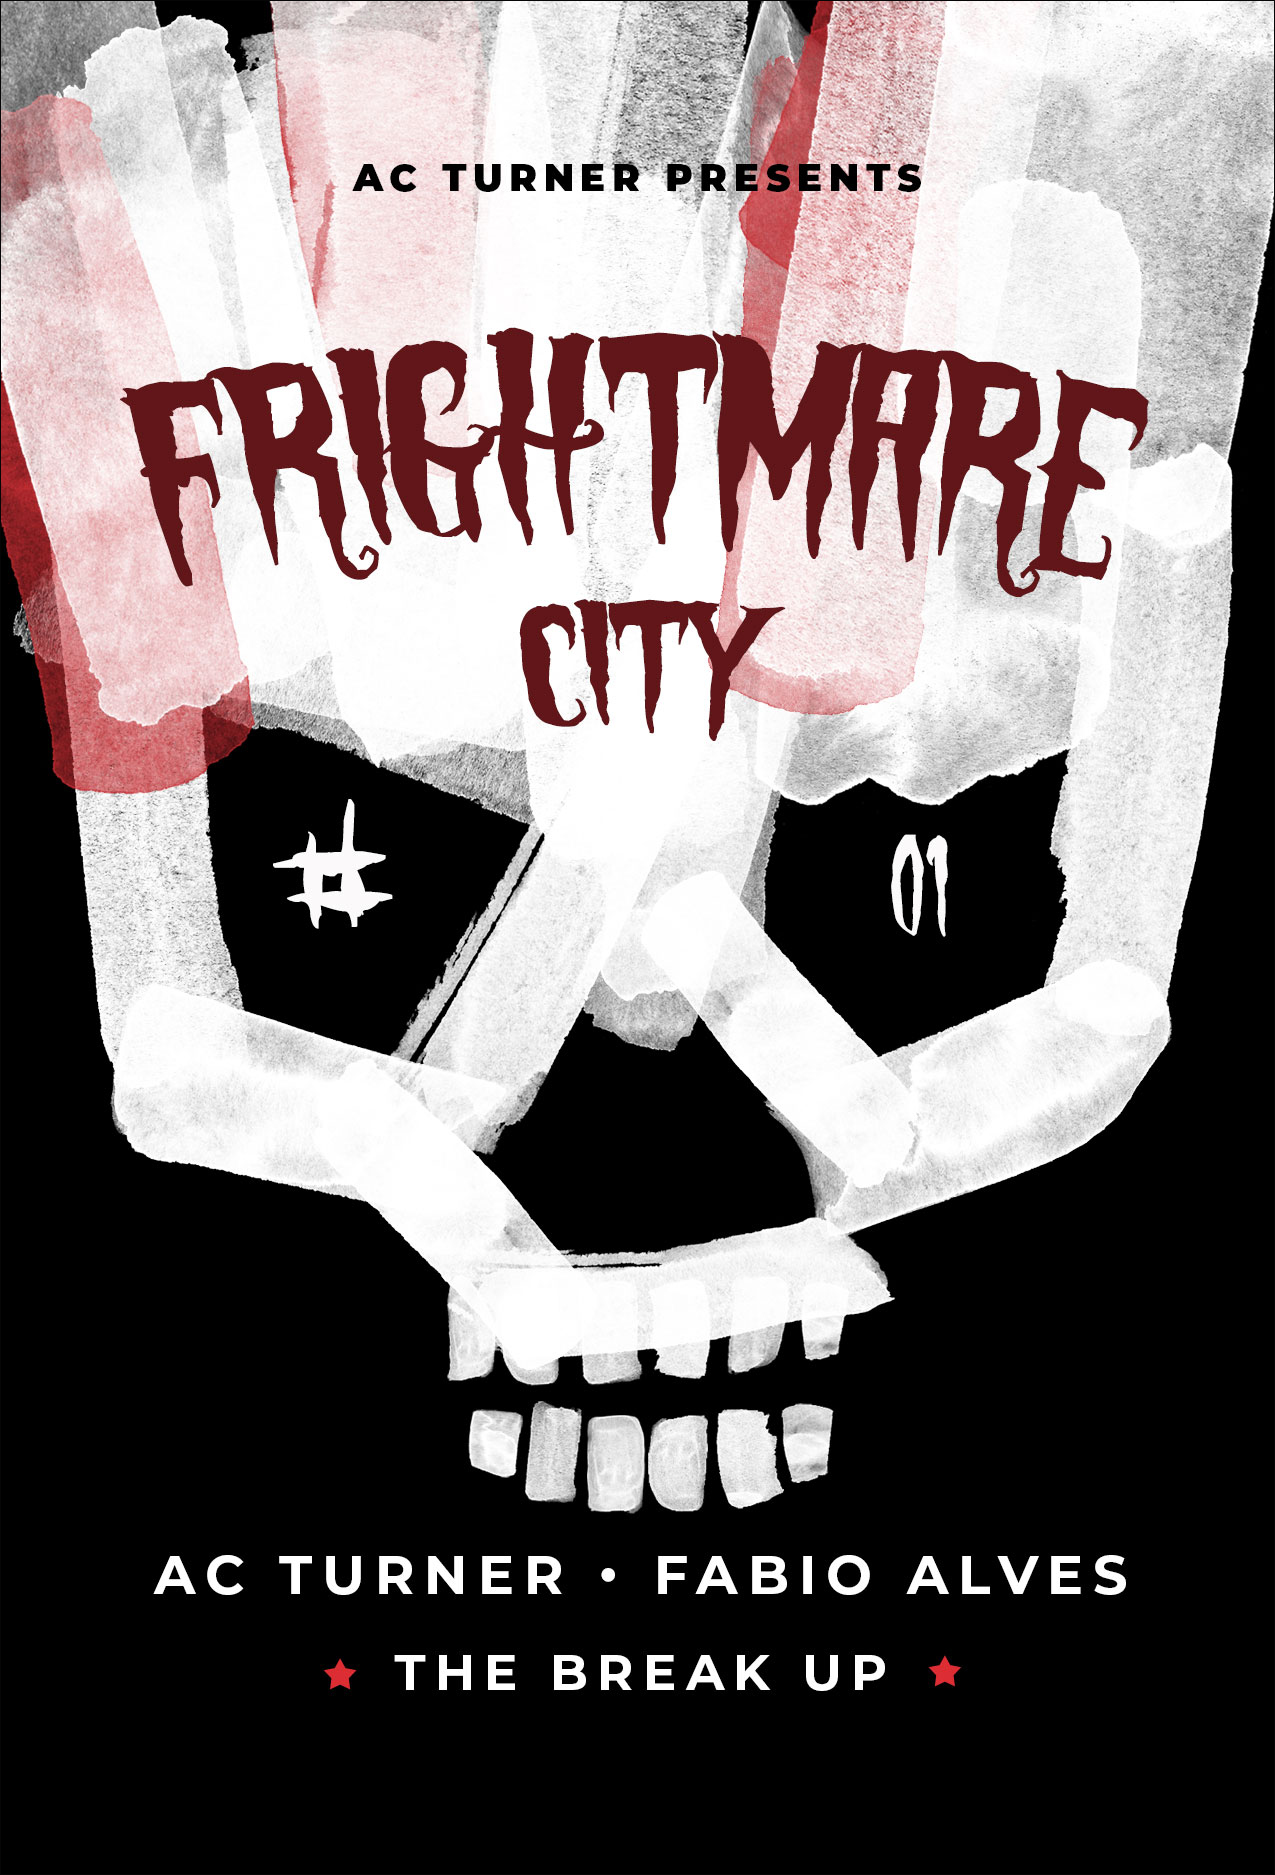 Frightmare City